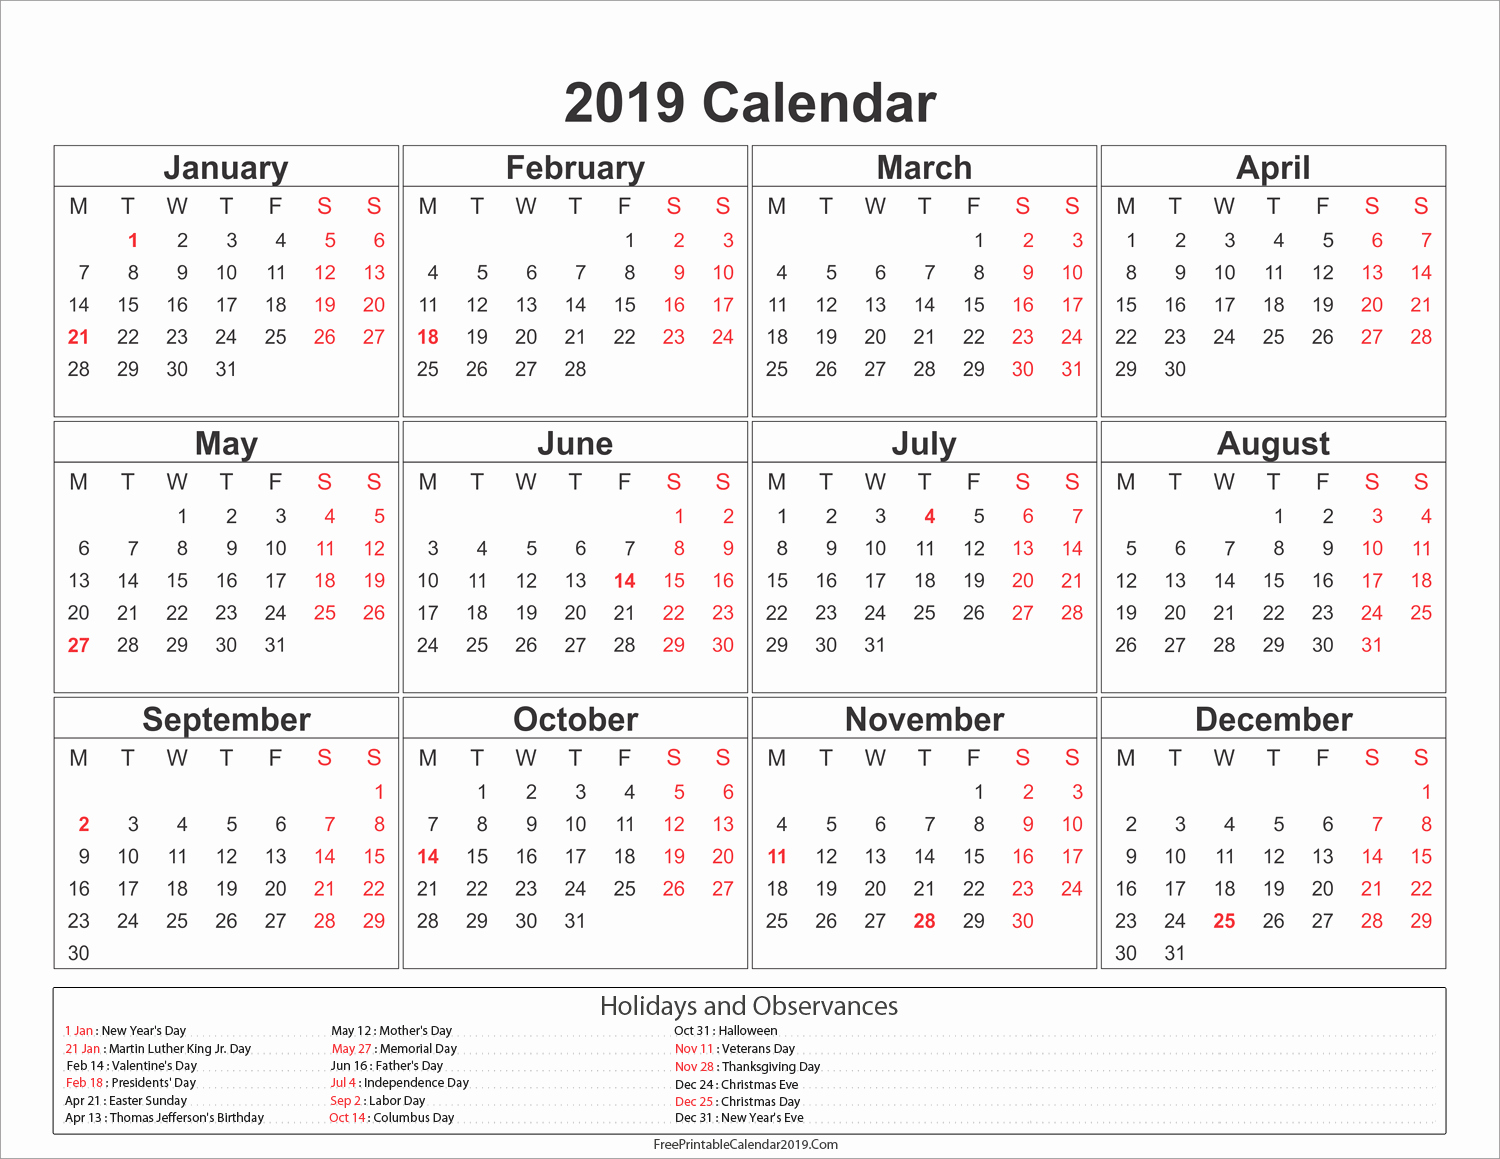 Free Printable 2019 Yearly Calendar New Free Printable Calendar 2019 with Holidays In Word Excel Pdf